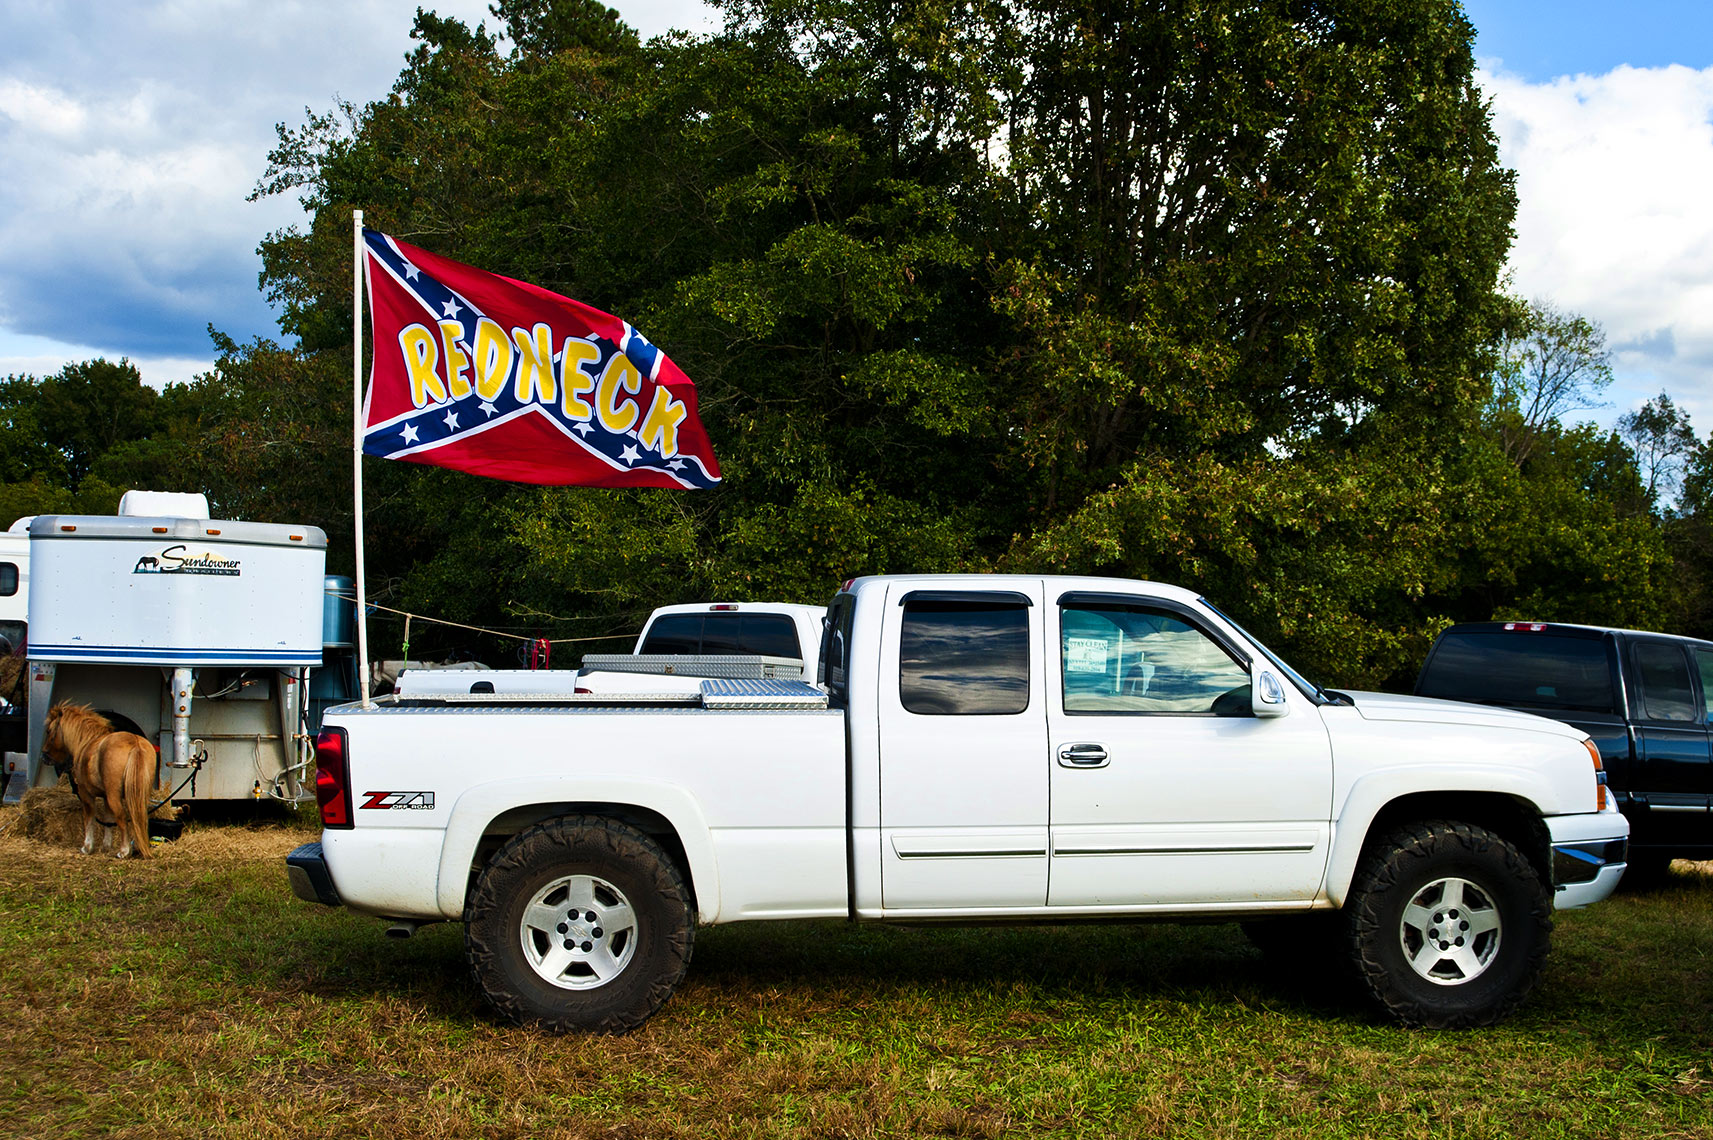 Redneck truck Mule days Benson Raleigh editorial photography